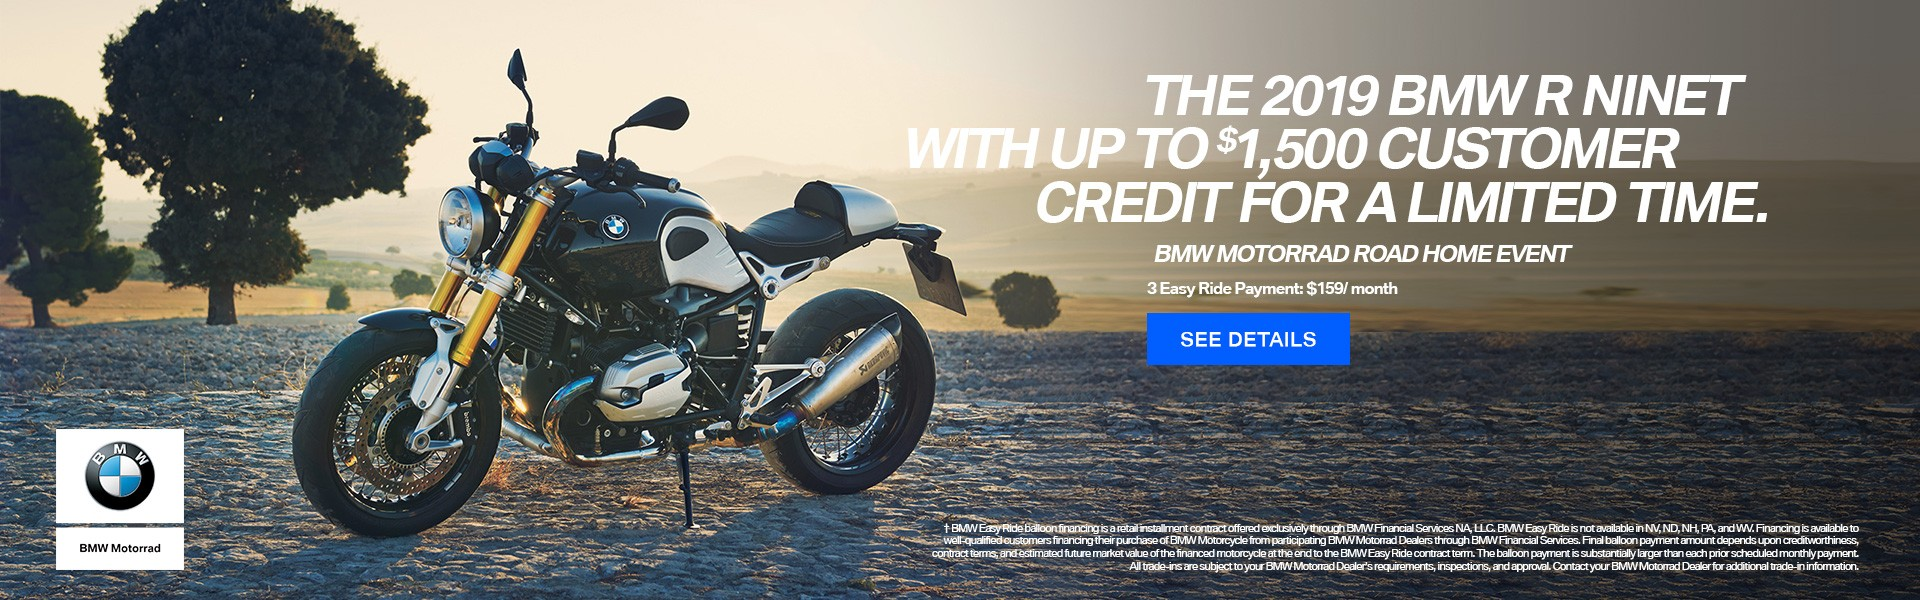 The 2019 BMW R NINET with up to $1500 Customer Credit for a limited time.